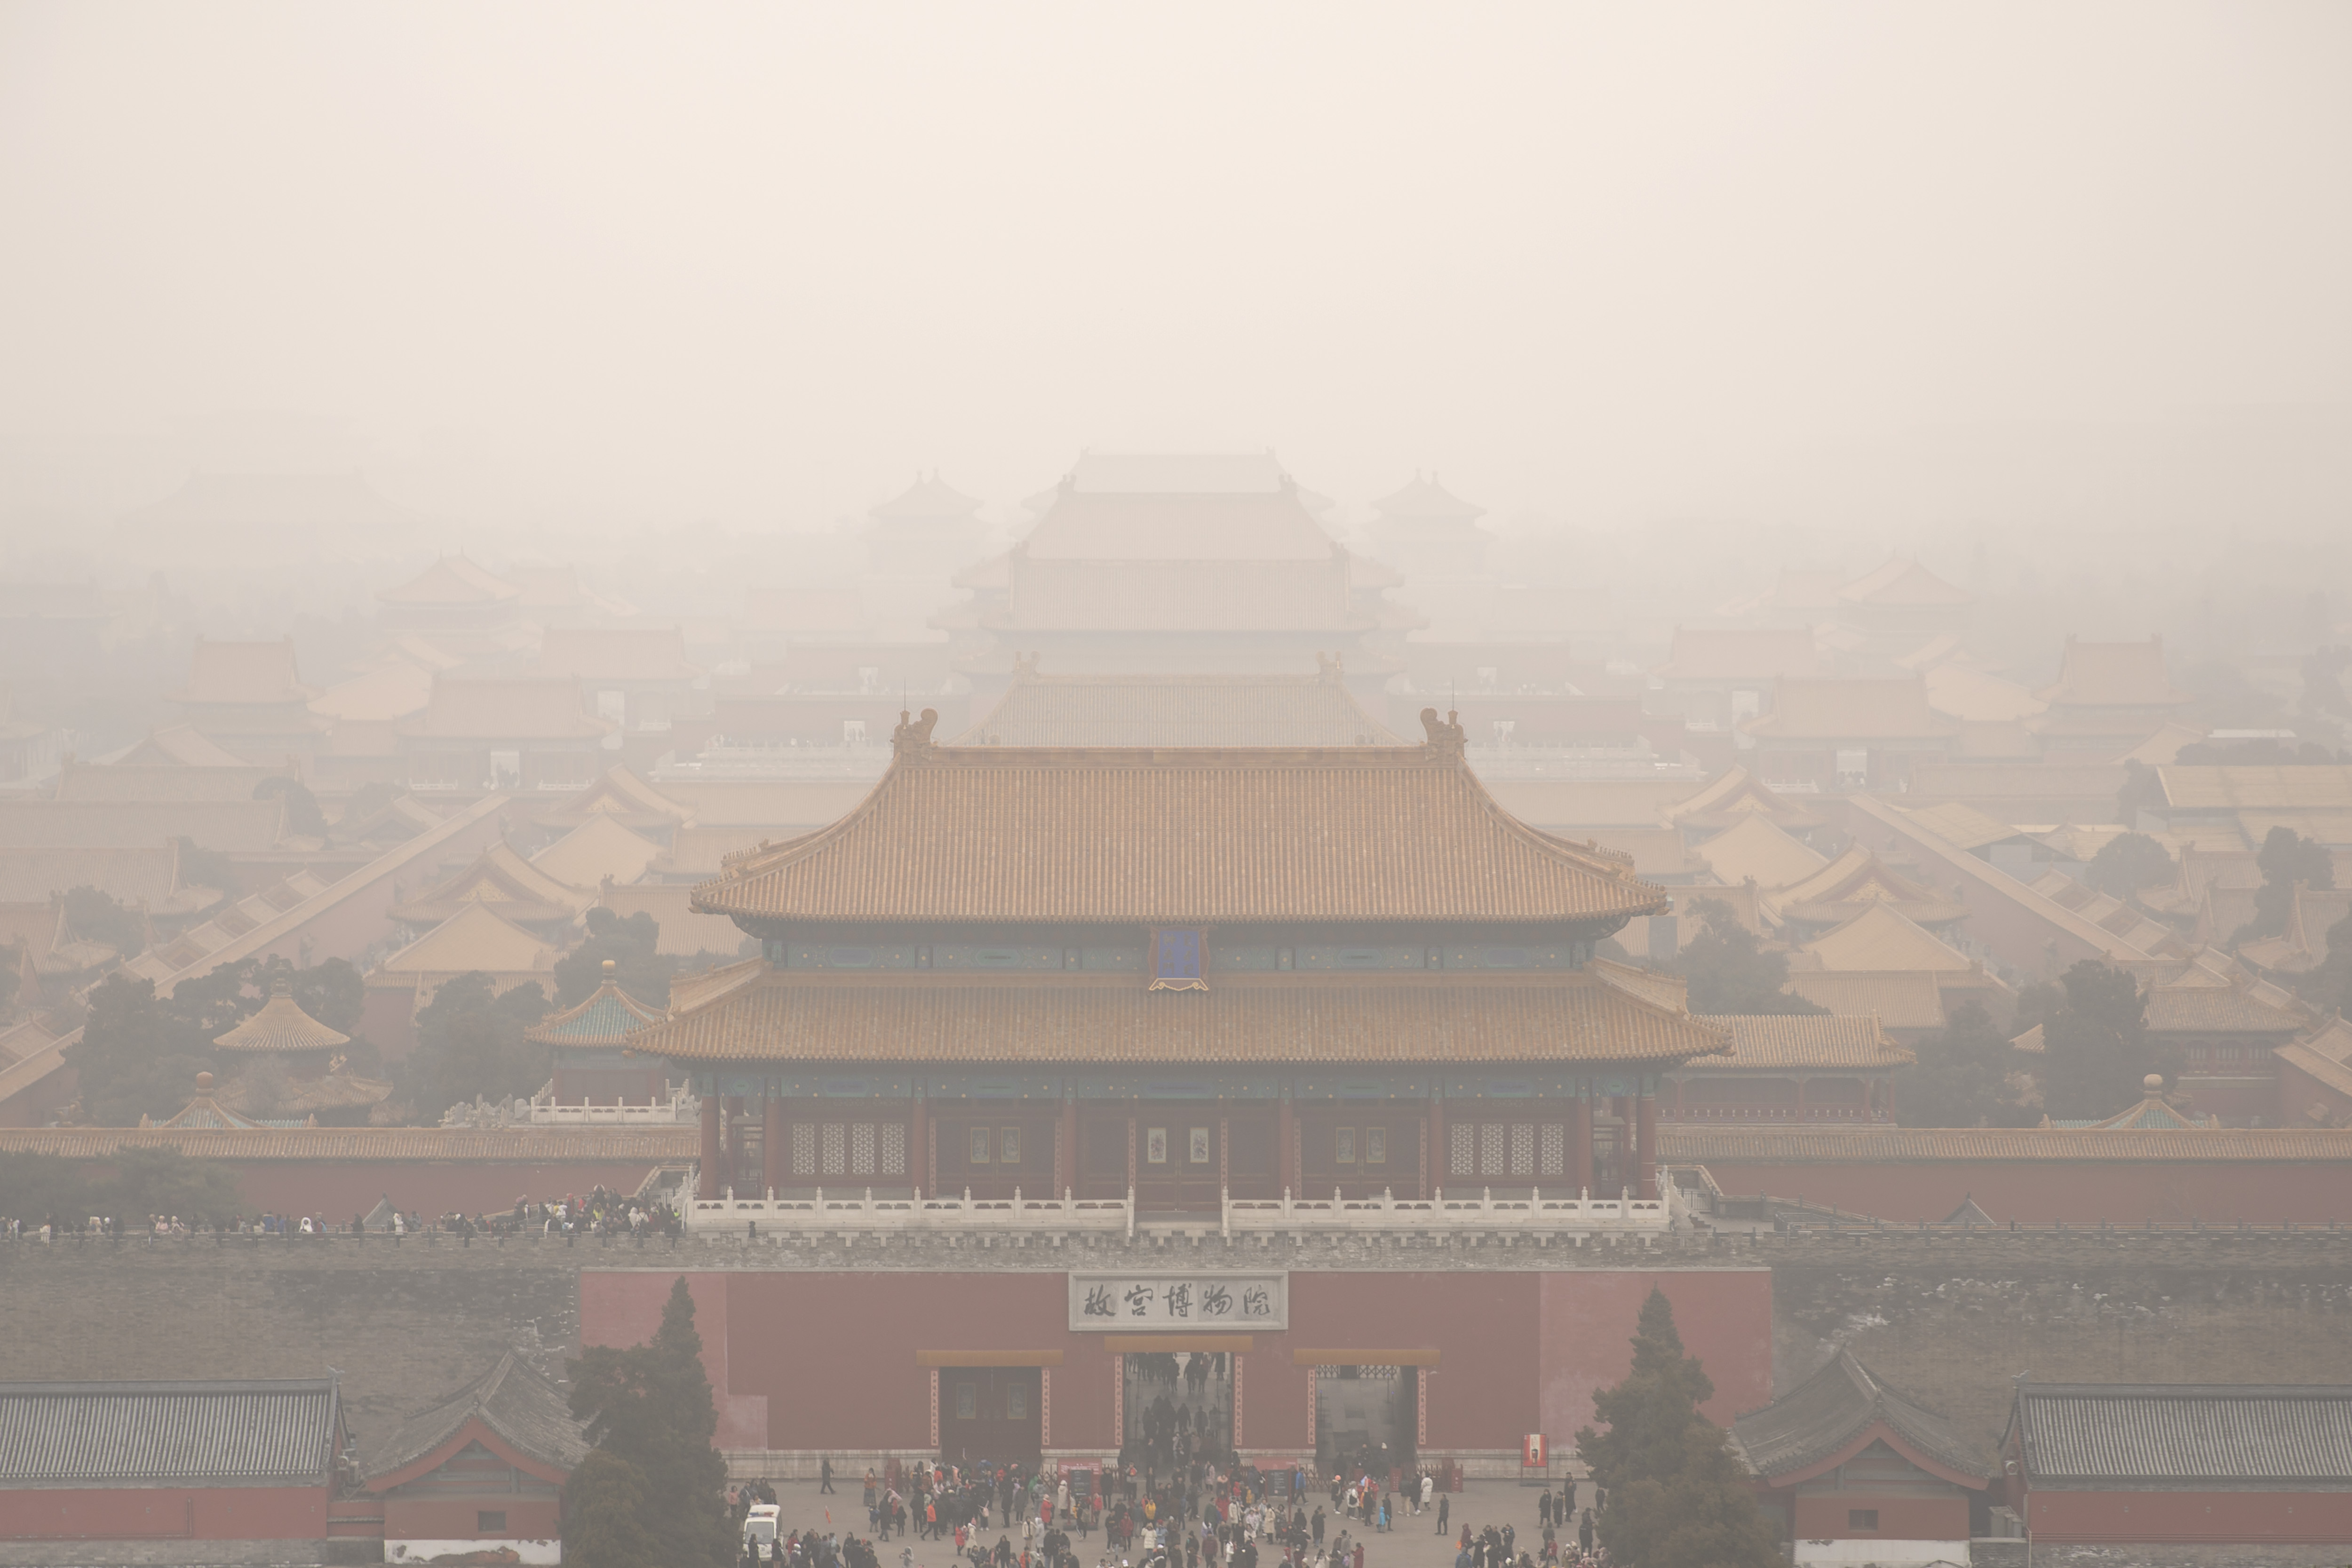 SUV on grounds of Beijings Forbidden City sparks outrage